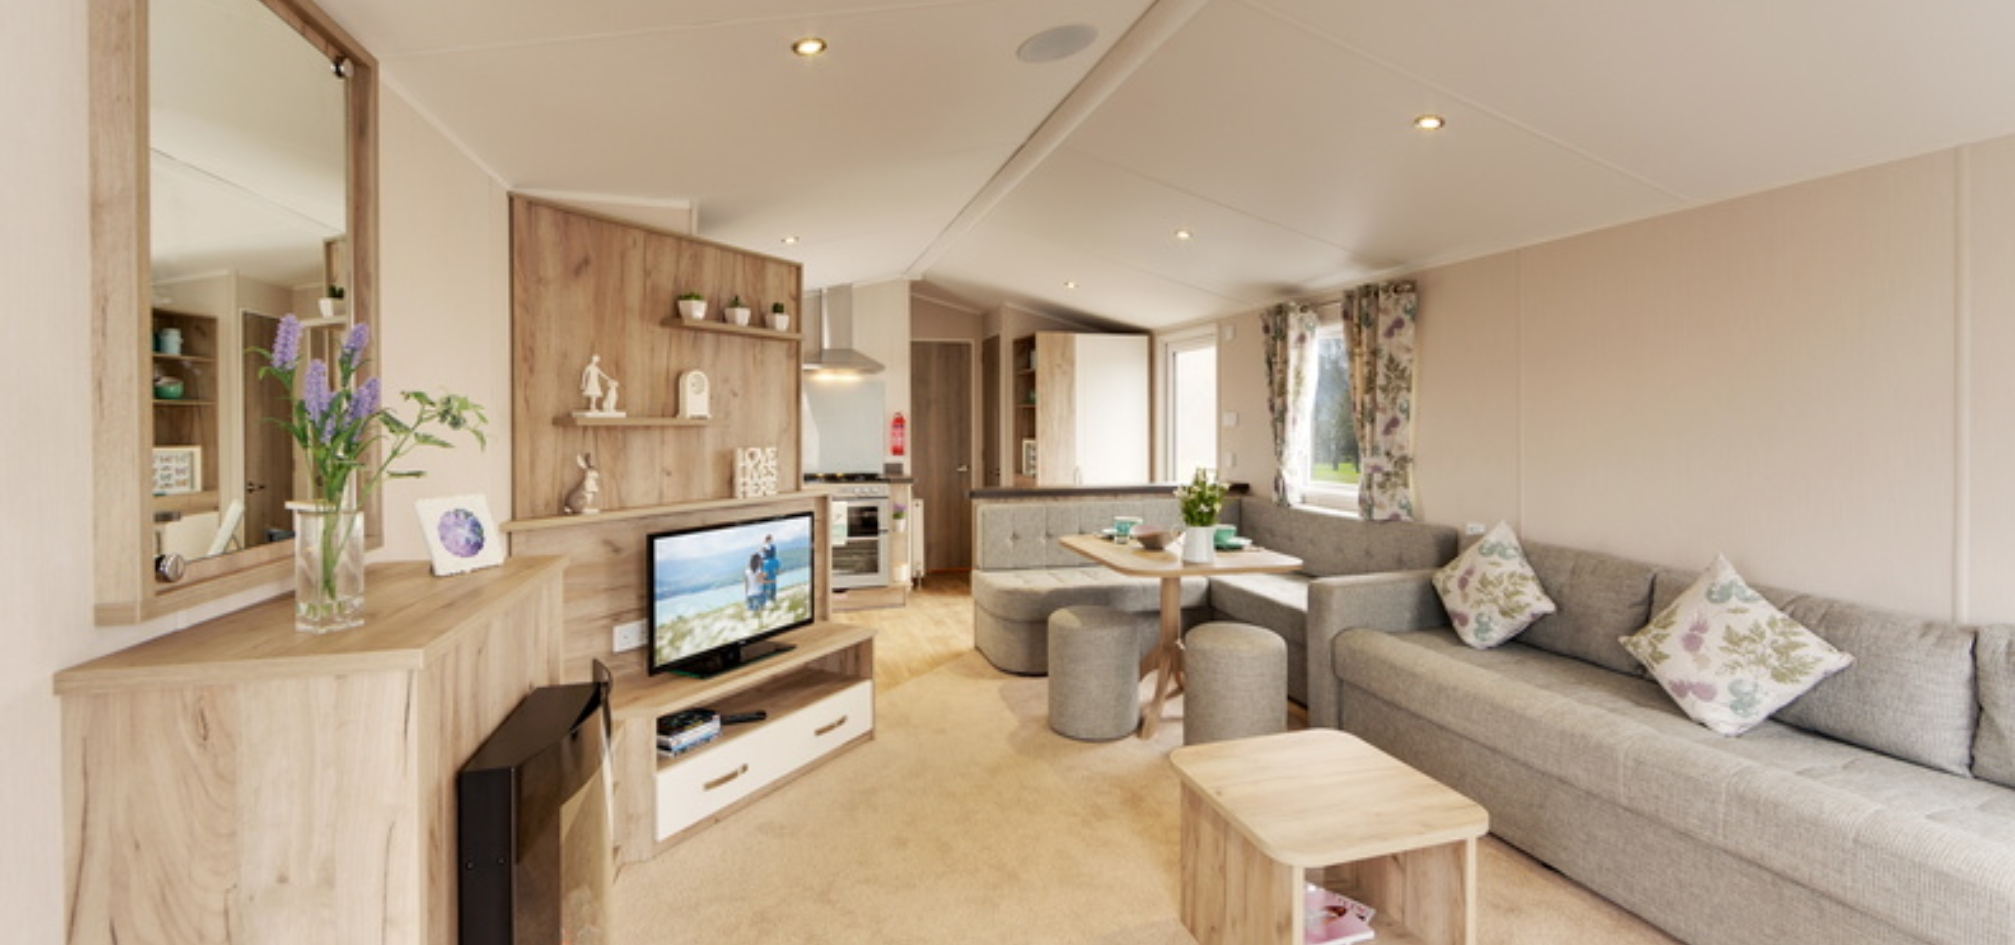 Open plan holiday home with a large living space leading into a dining area followed by a kitchen on the far left hand side